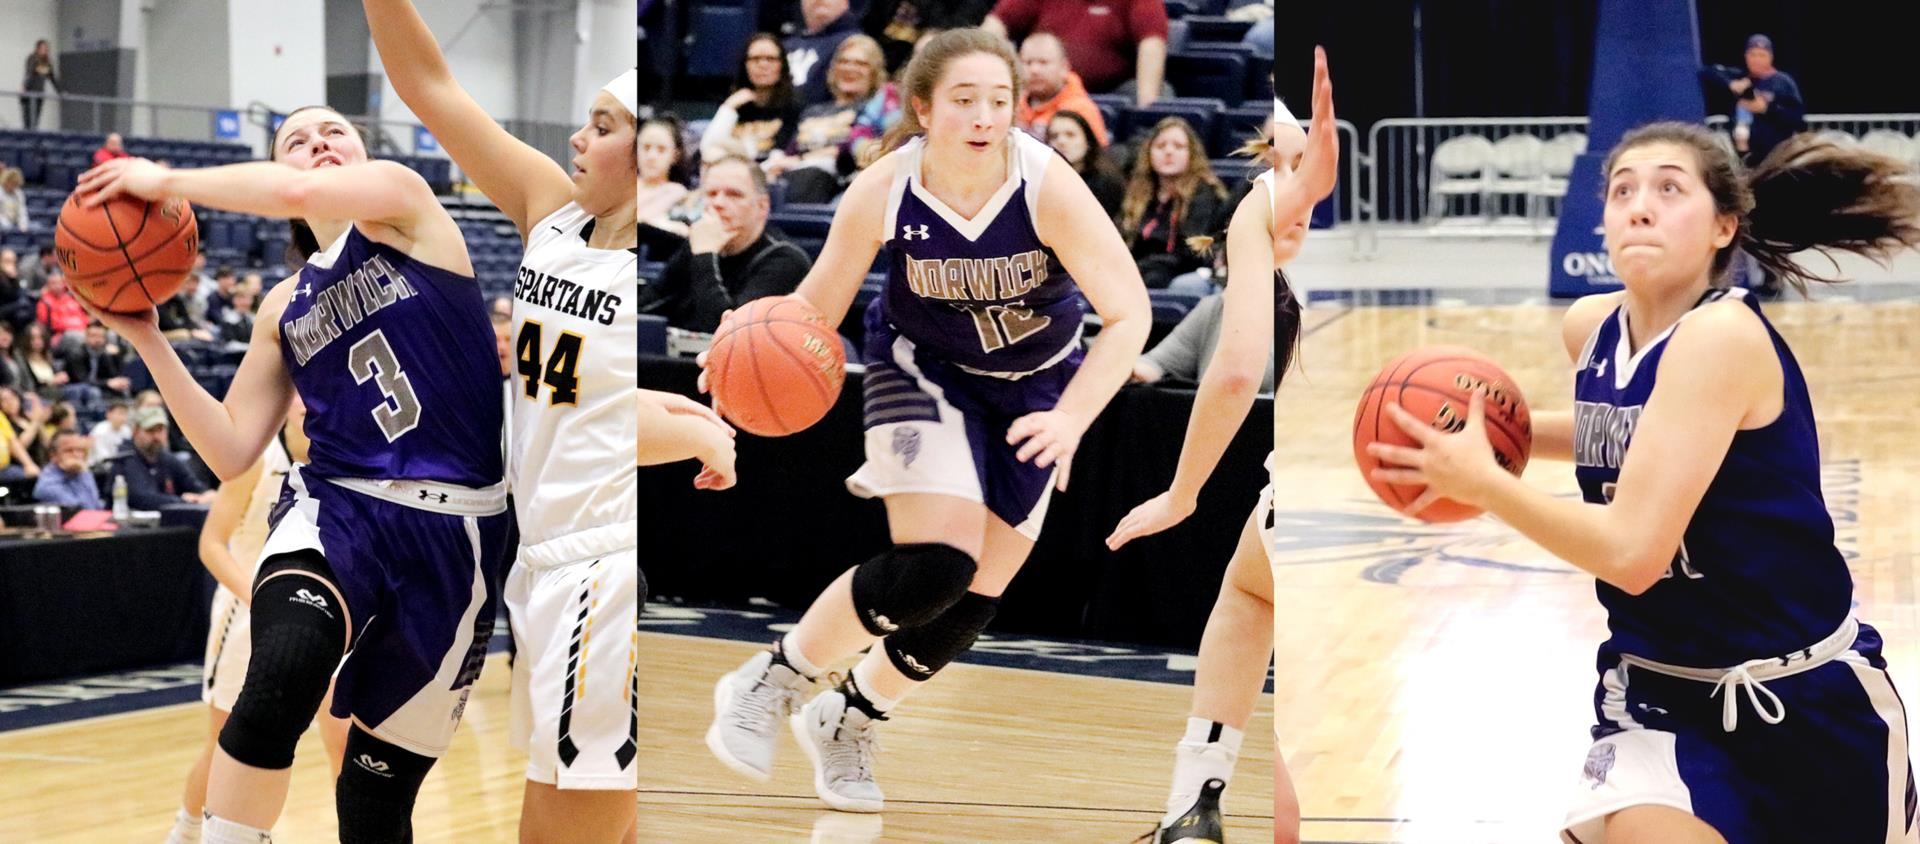 2019 all-state girls basketball players Taylor Hansen, Halea Eaton and Abby Flynn